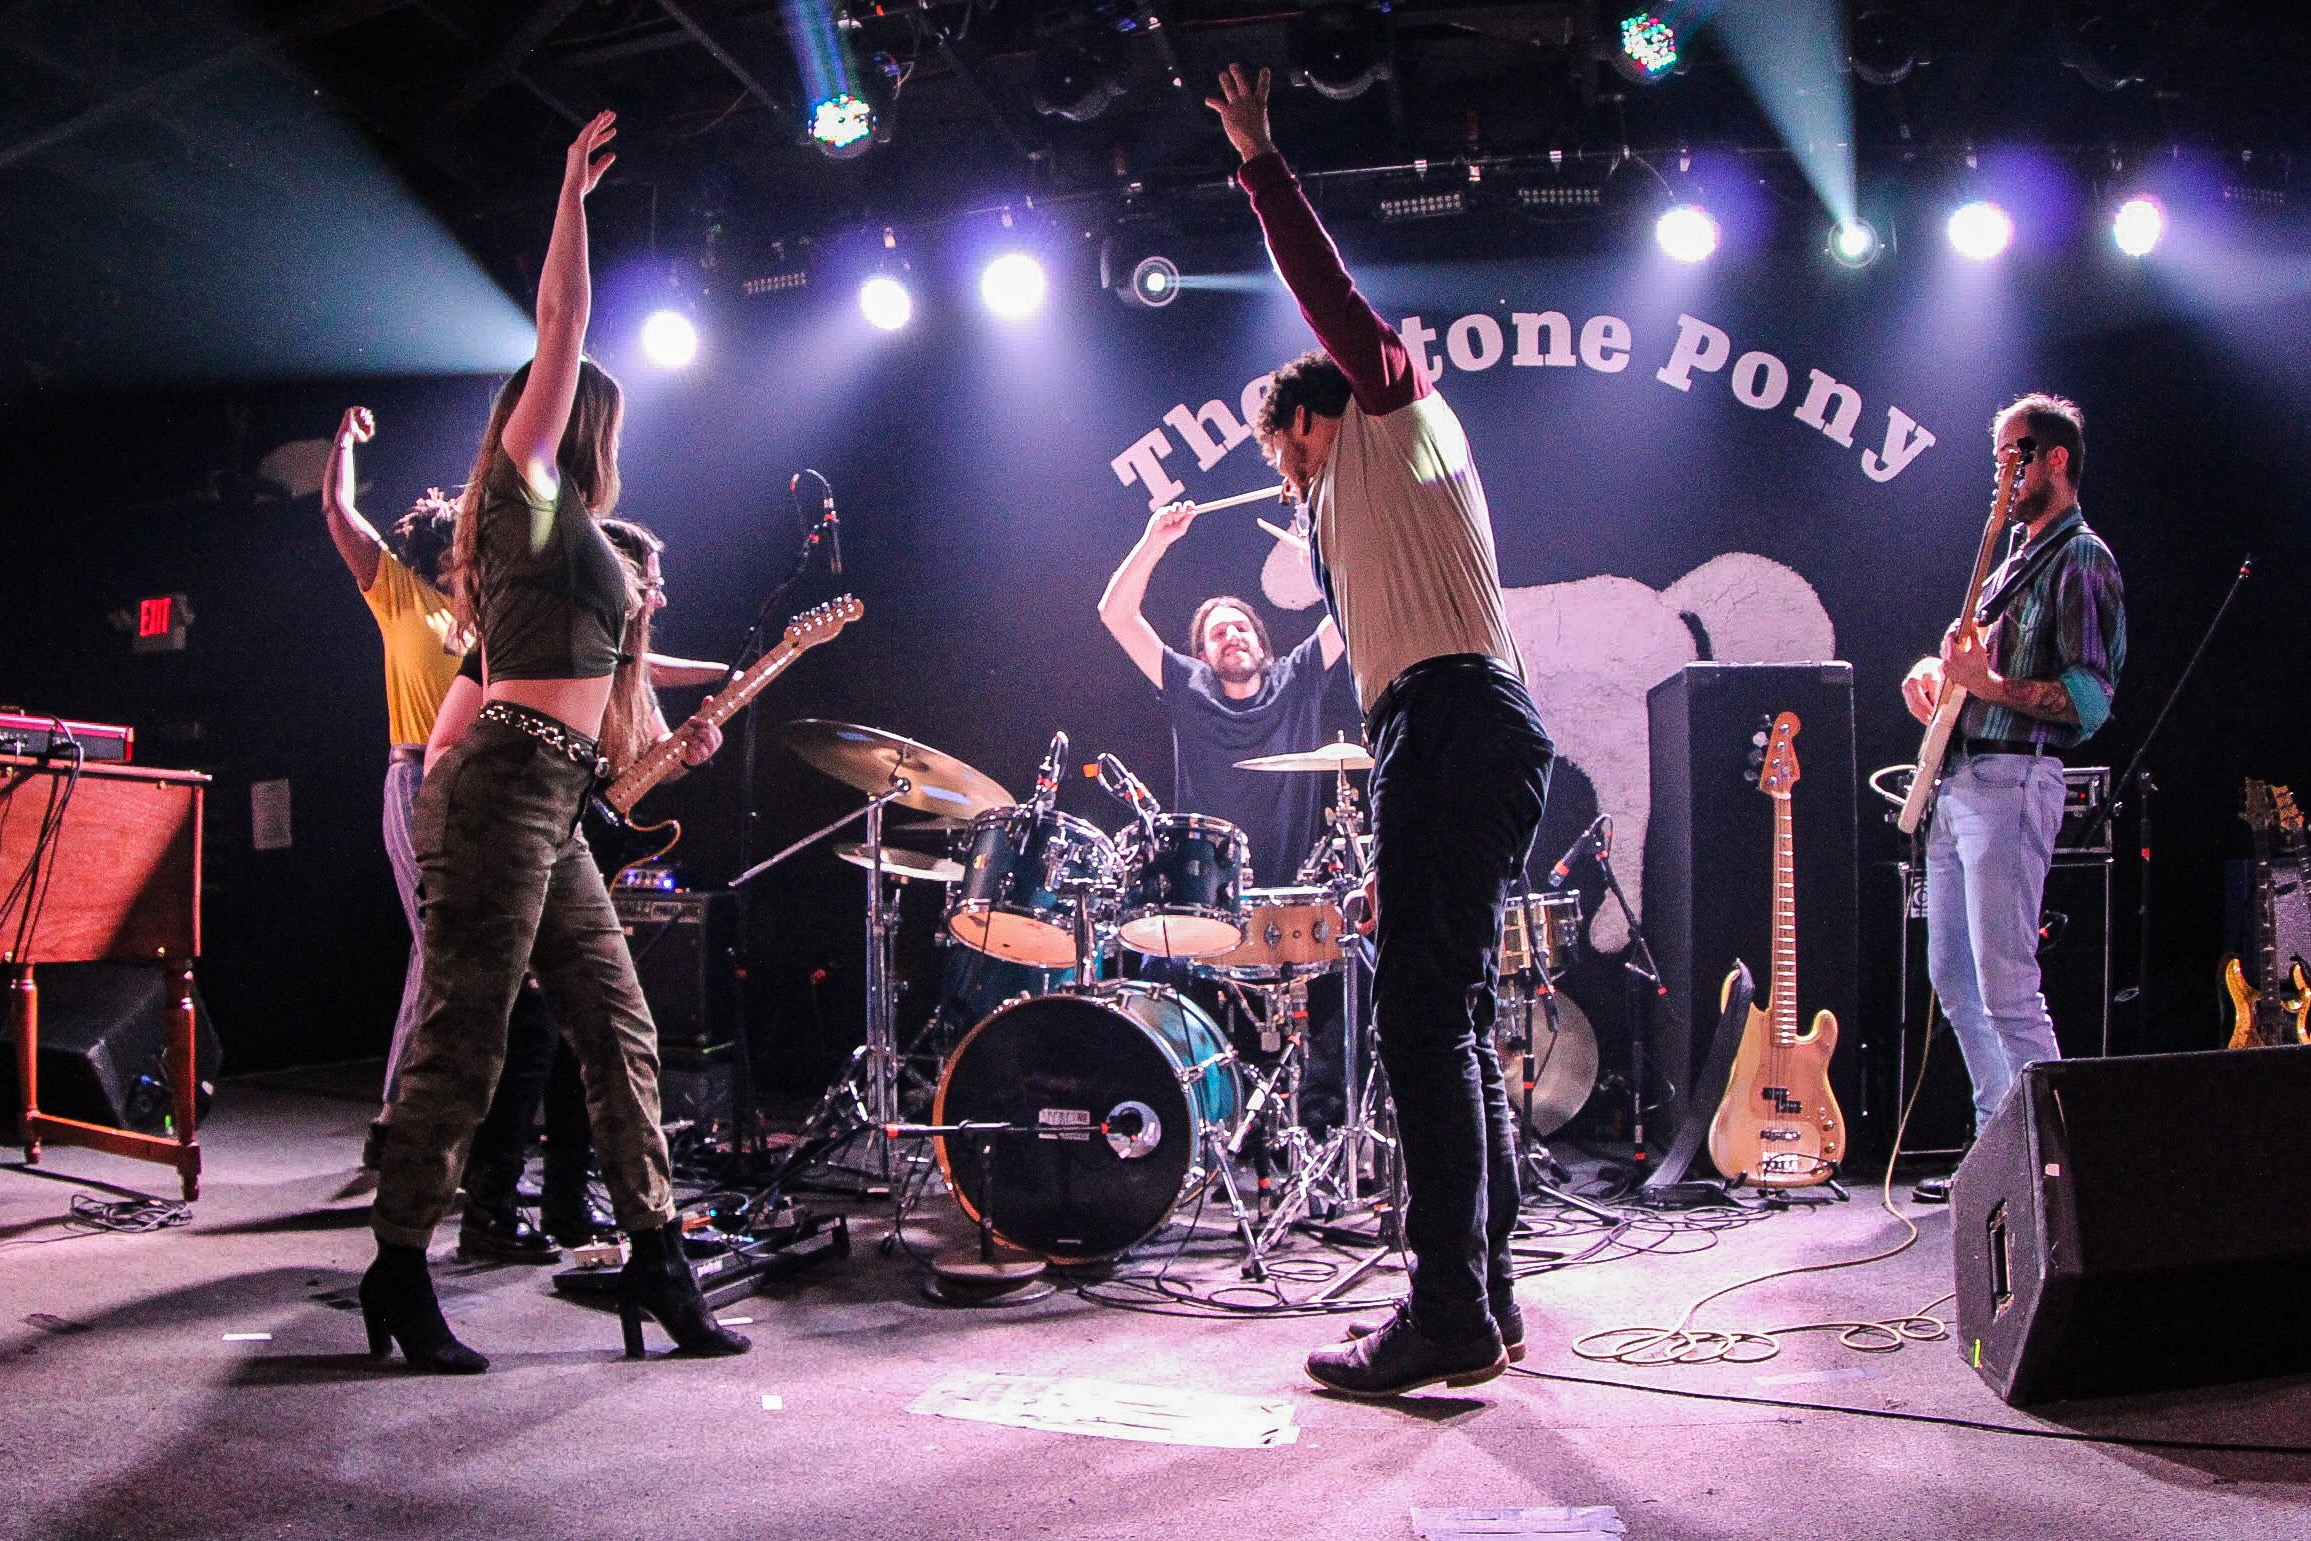 Switch Mob at Stone Pony 04.13.19.jpeg